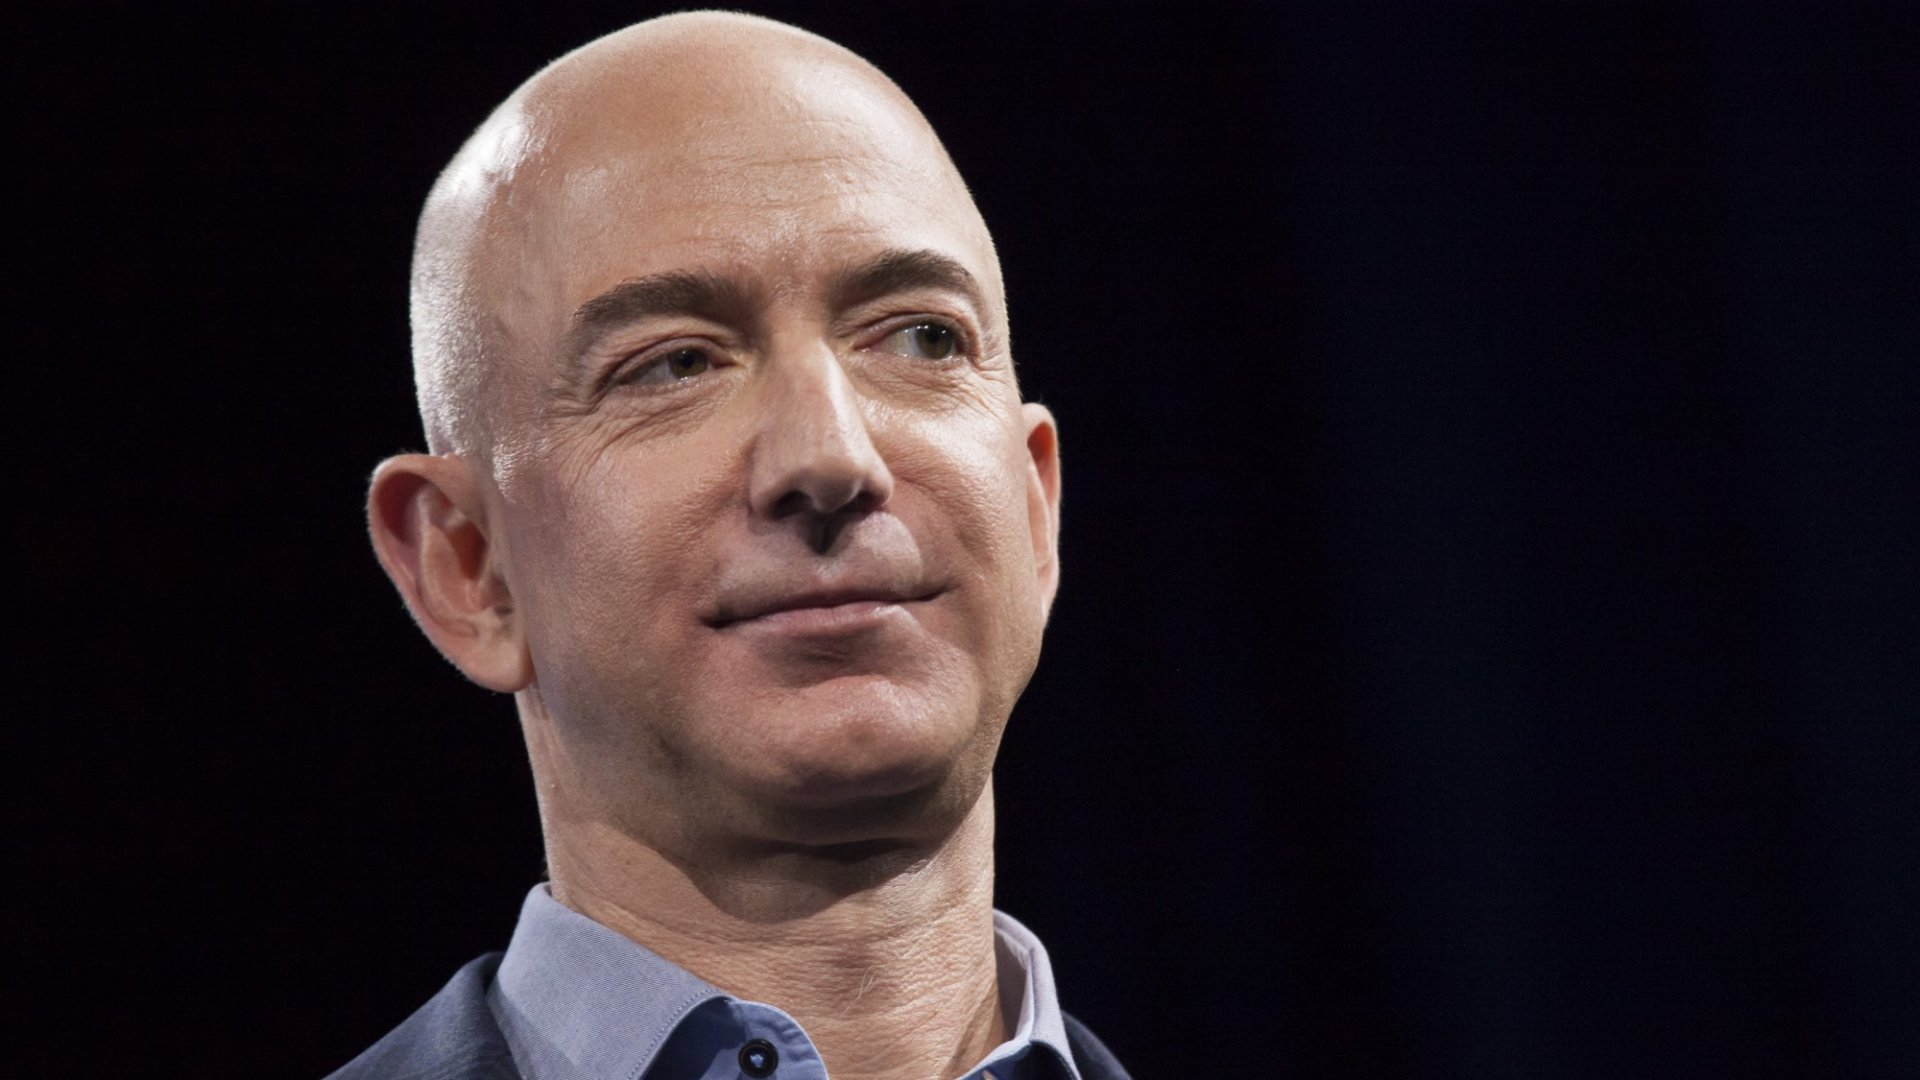 Amazon May Be Creating an Online TV Service to Take Down Cable Companies